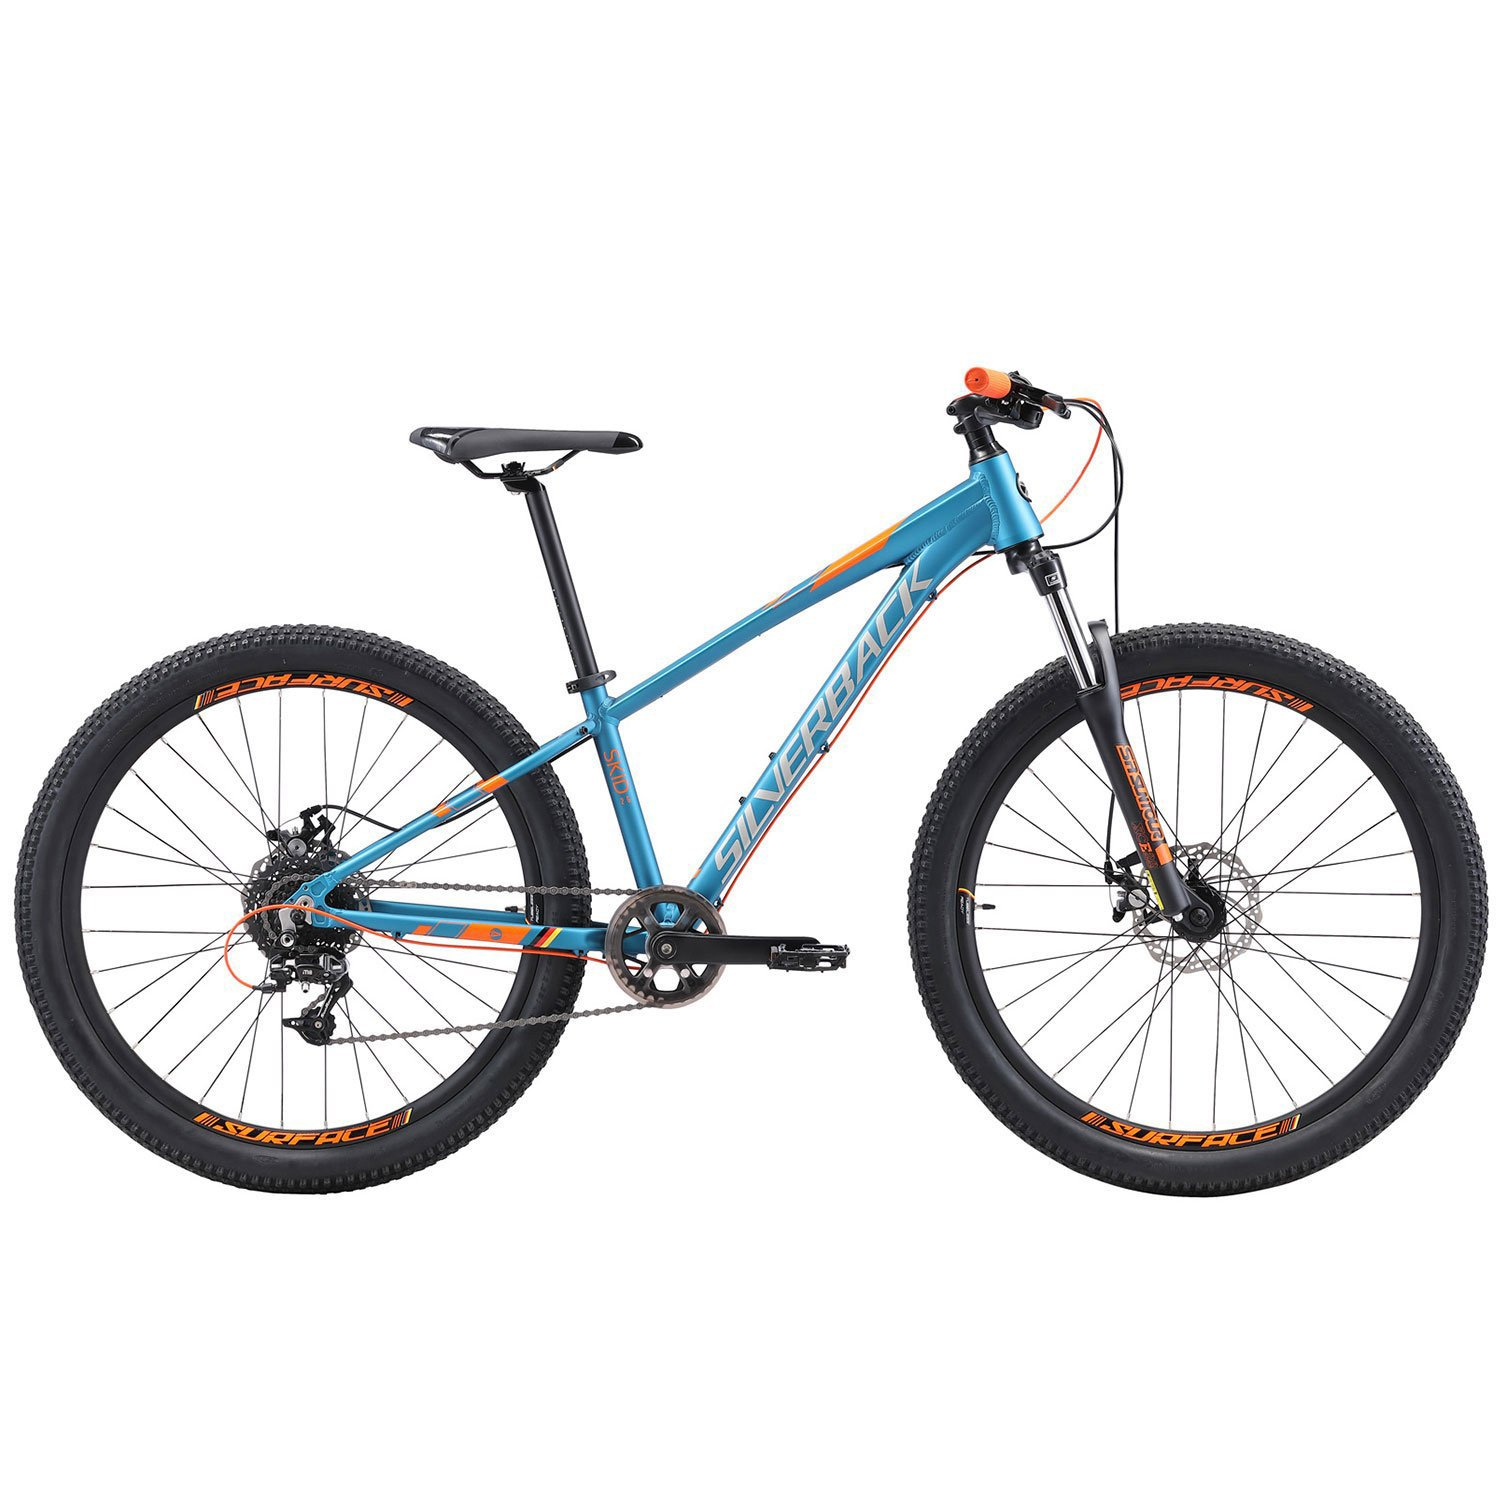 silverback-skid-26&quot-